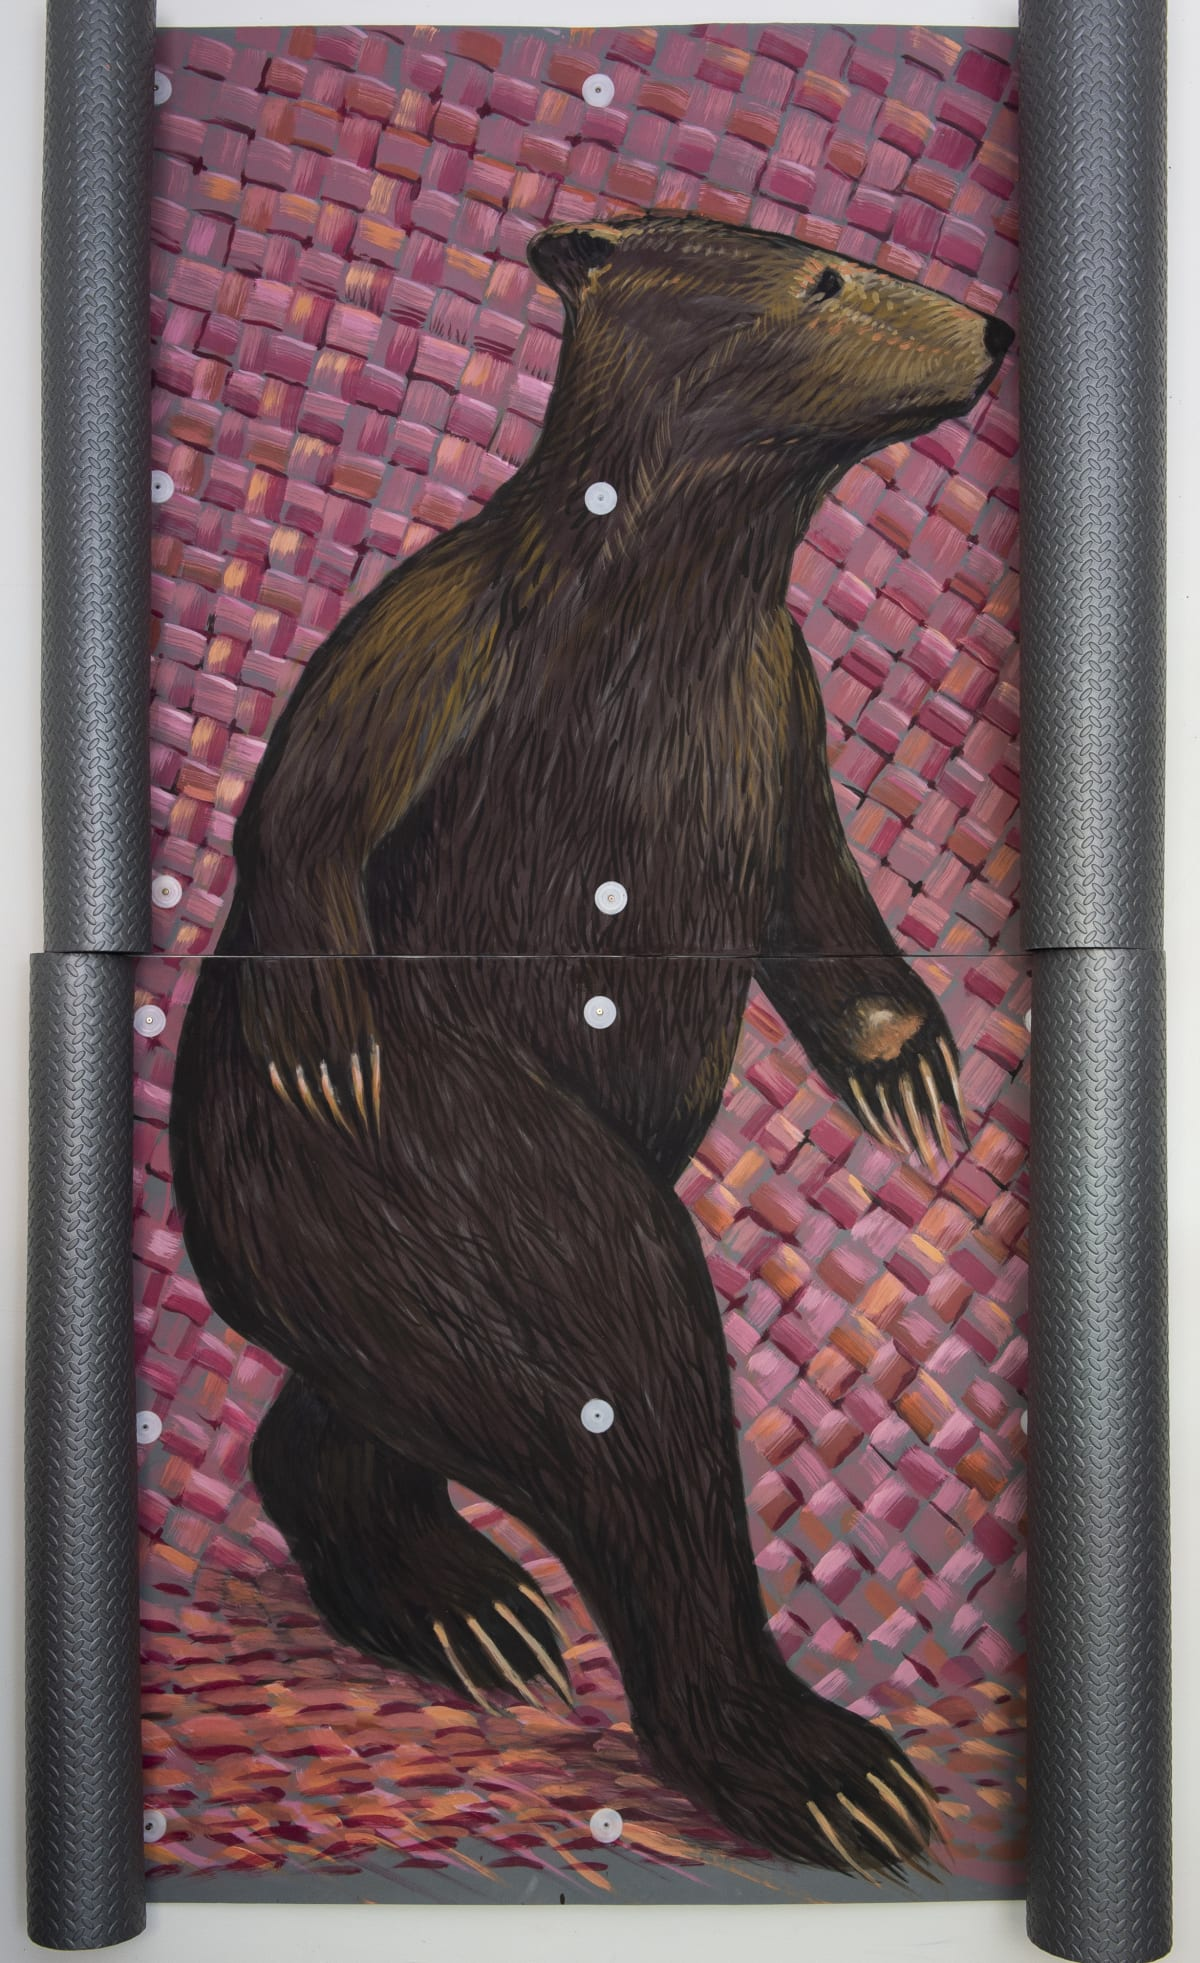 Derek Cowie, Long Bear (Fabric) c2048, 2020